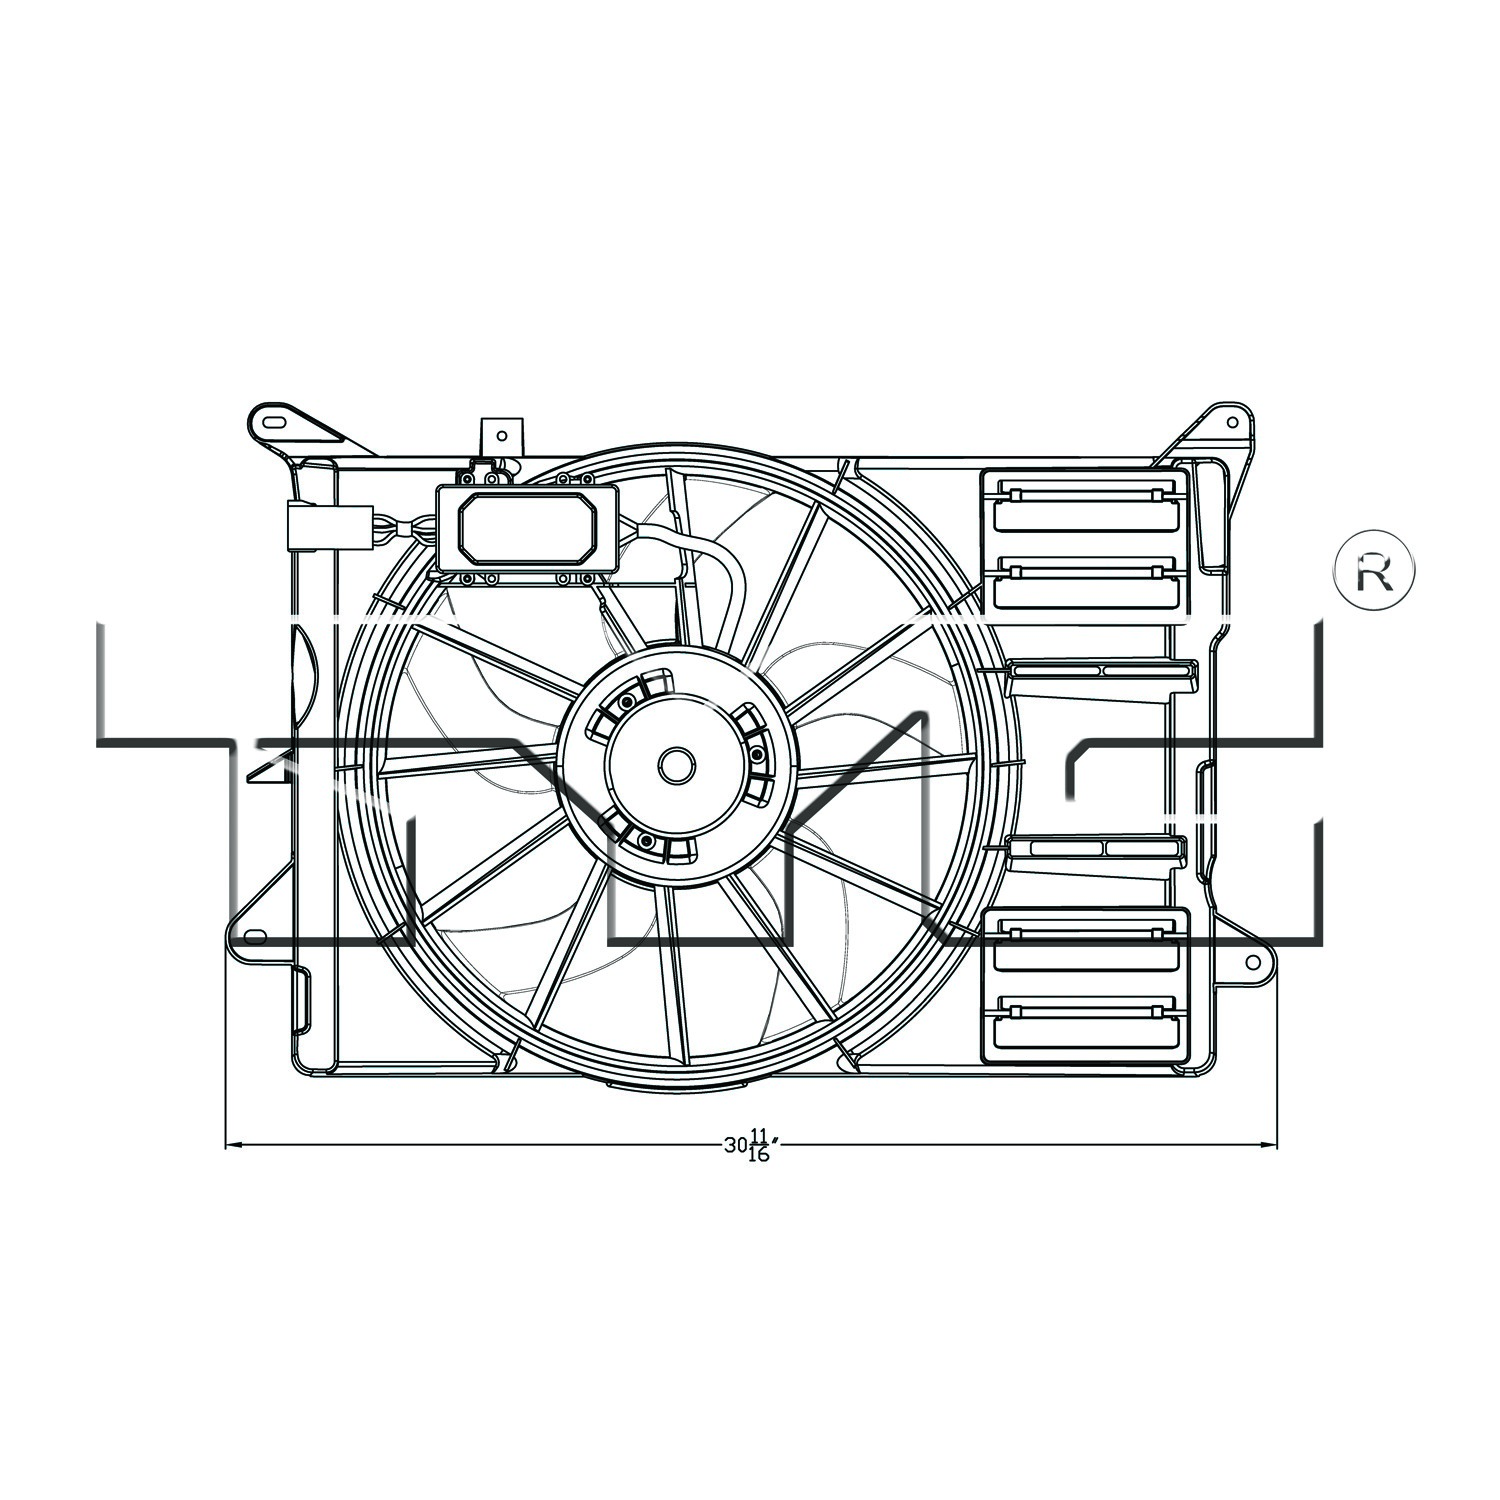 2013 Ford Edge Dual Radiator And Condenser Fan Assembly Schematic Ty 623140